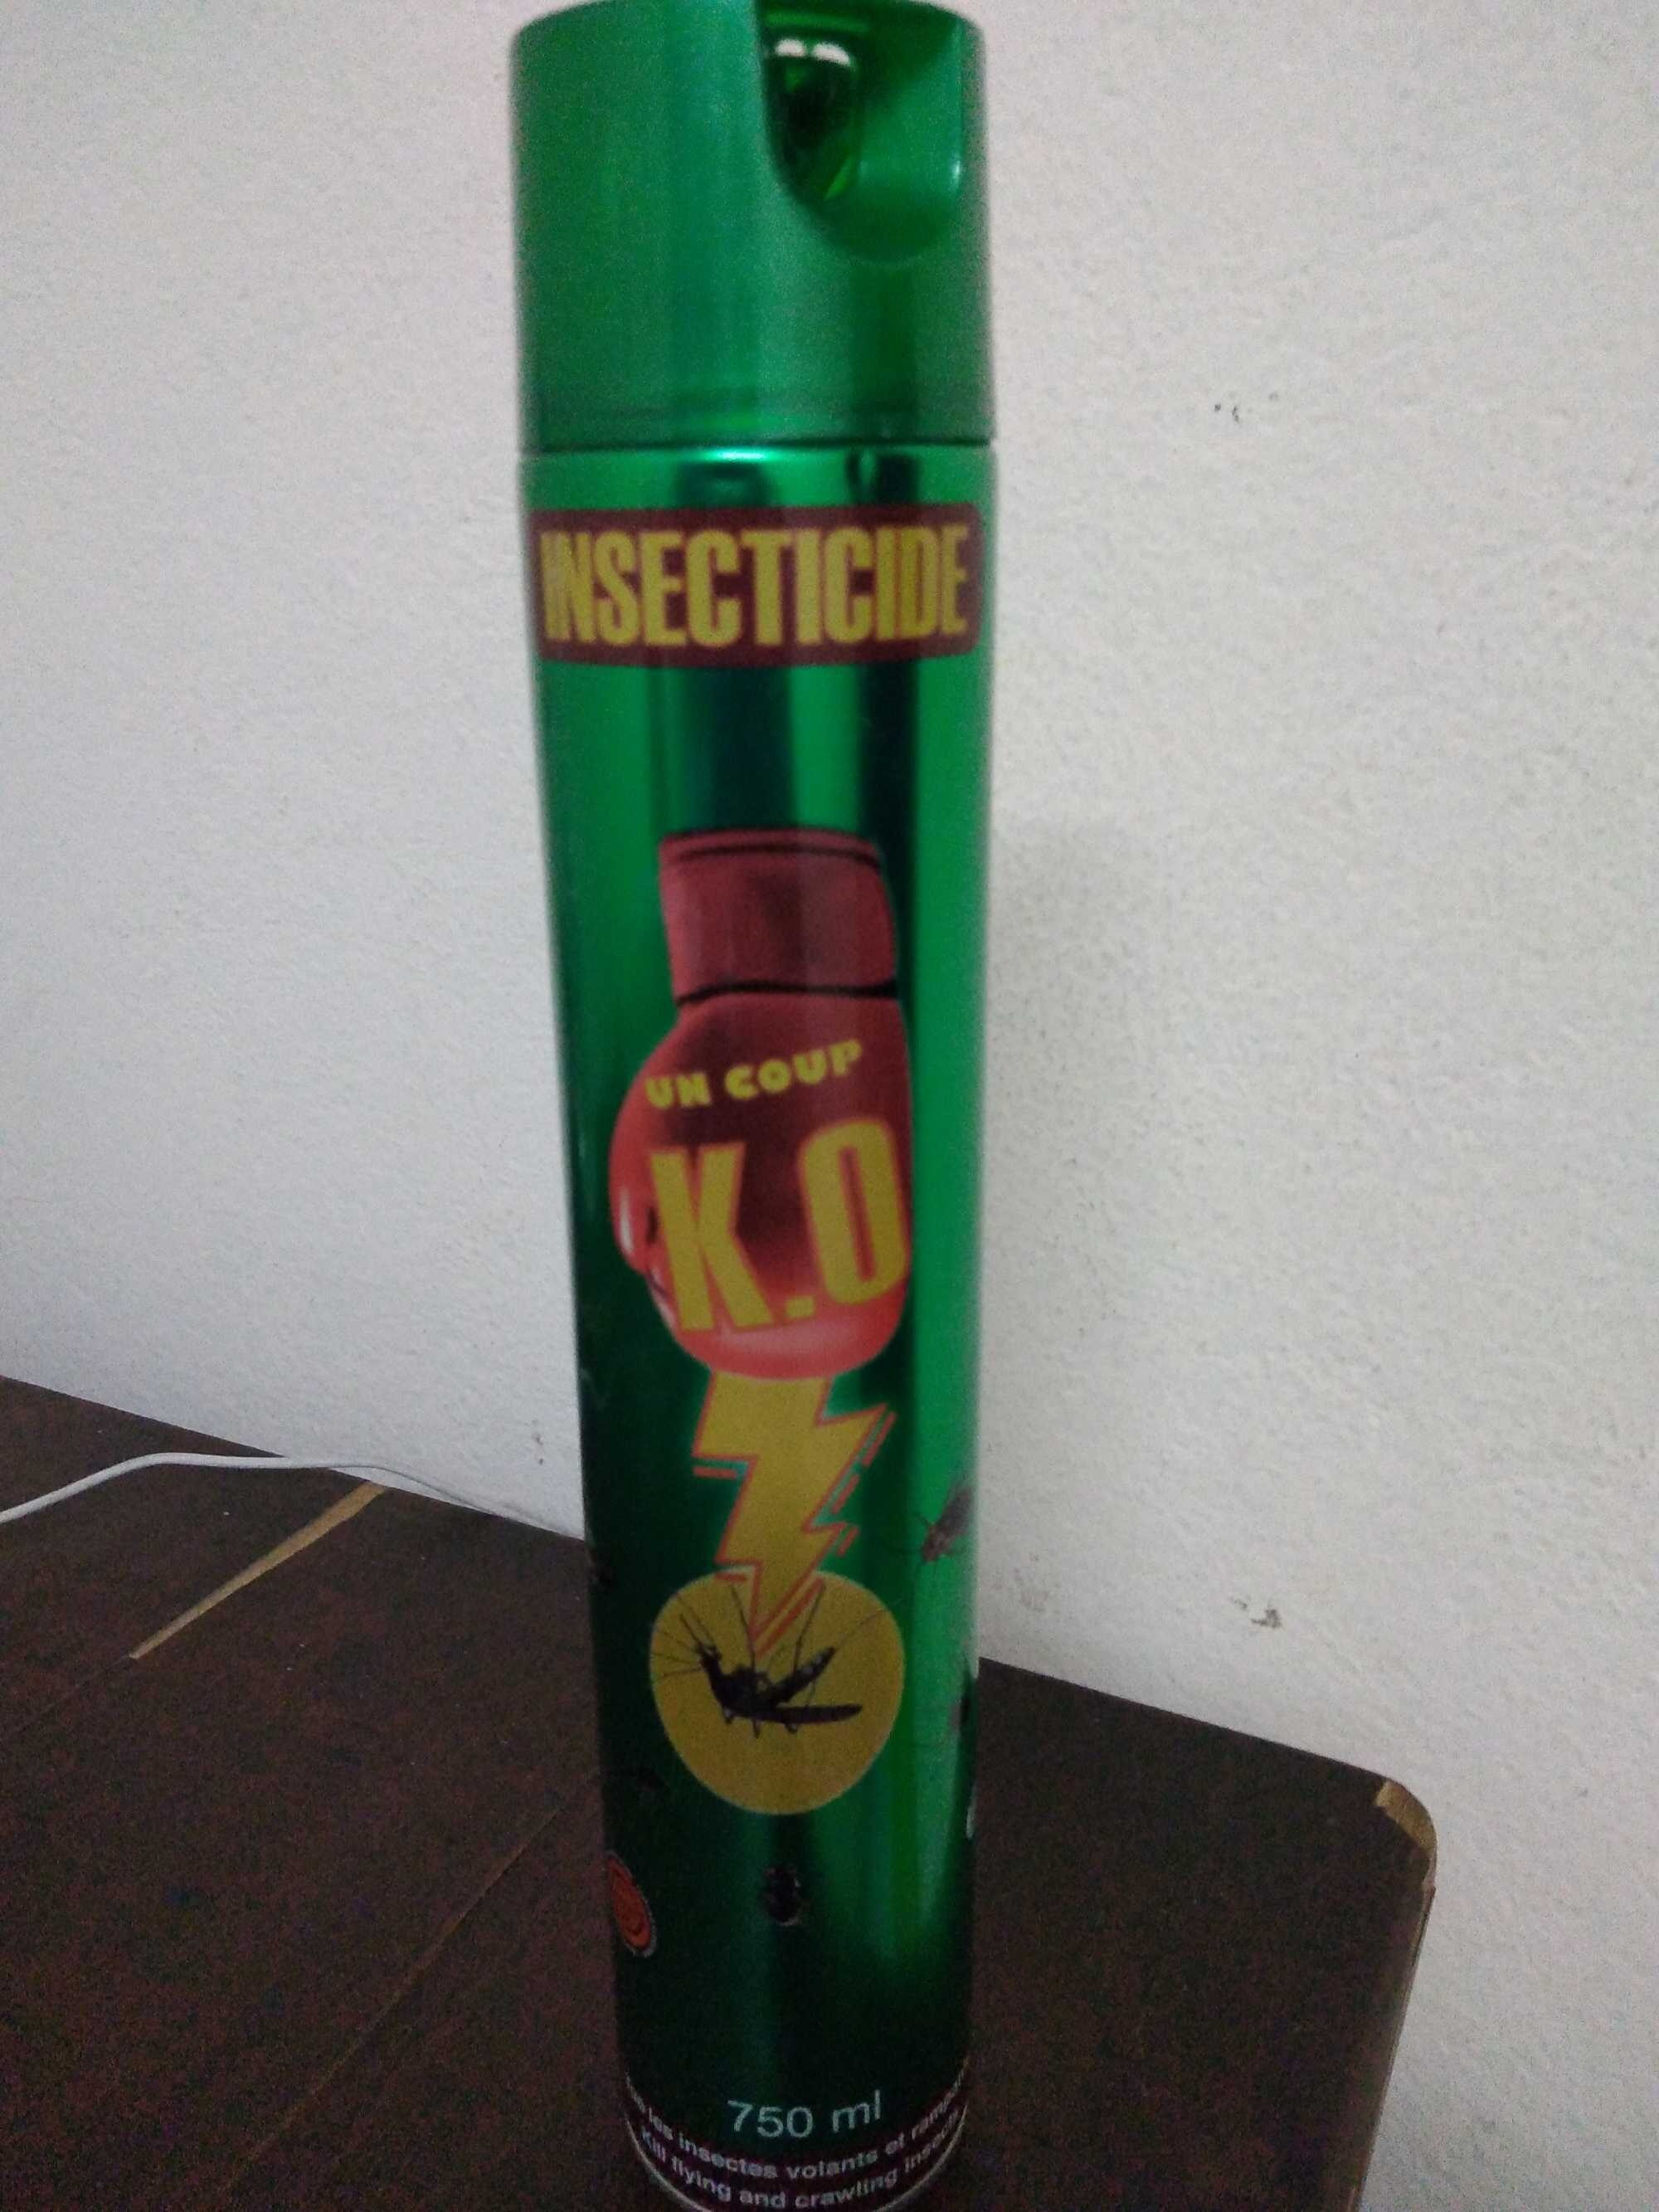 Insecticide un coup KO - Product